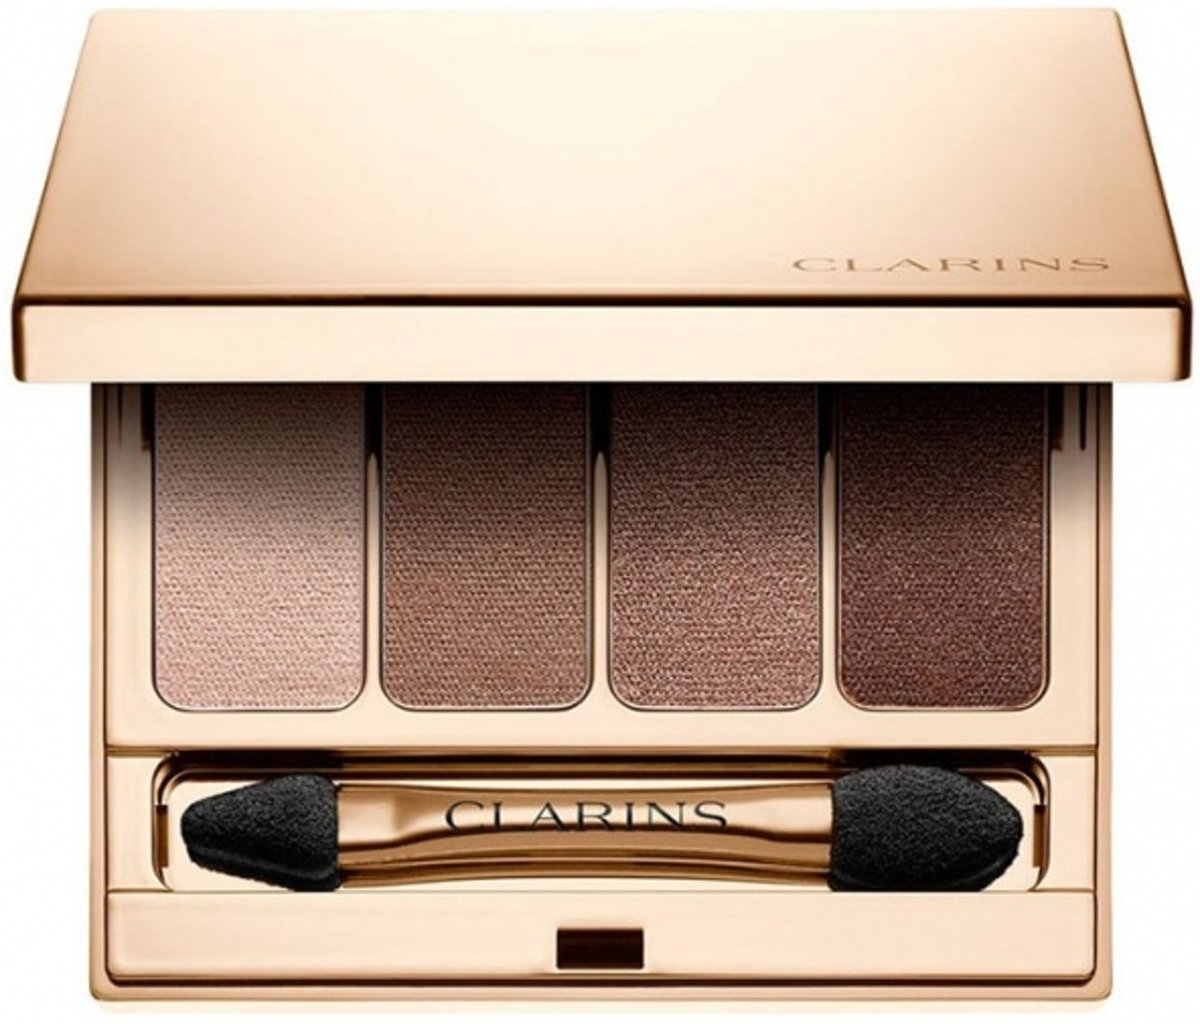 Clarins Palette 4 Couleurs Oogschaduwpalette 6.9 gr - 03 - Brown